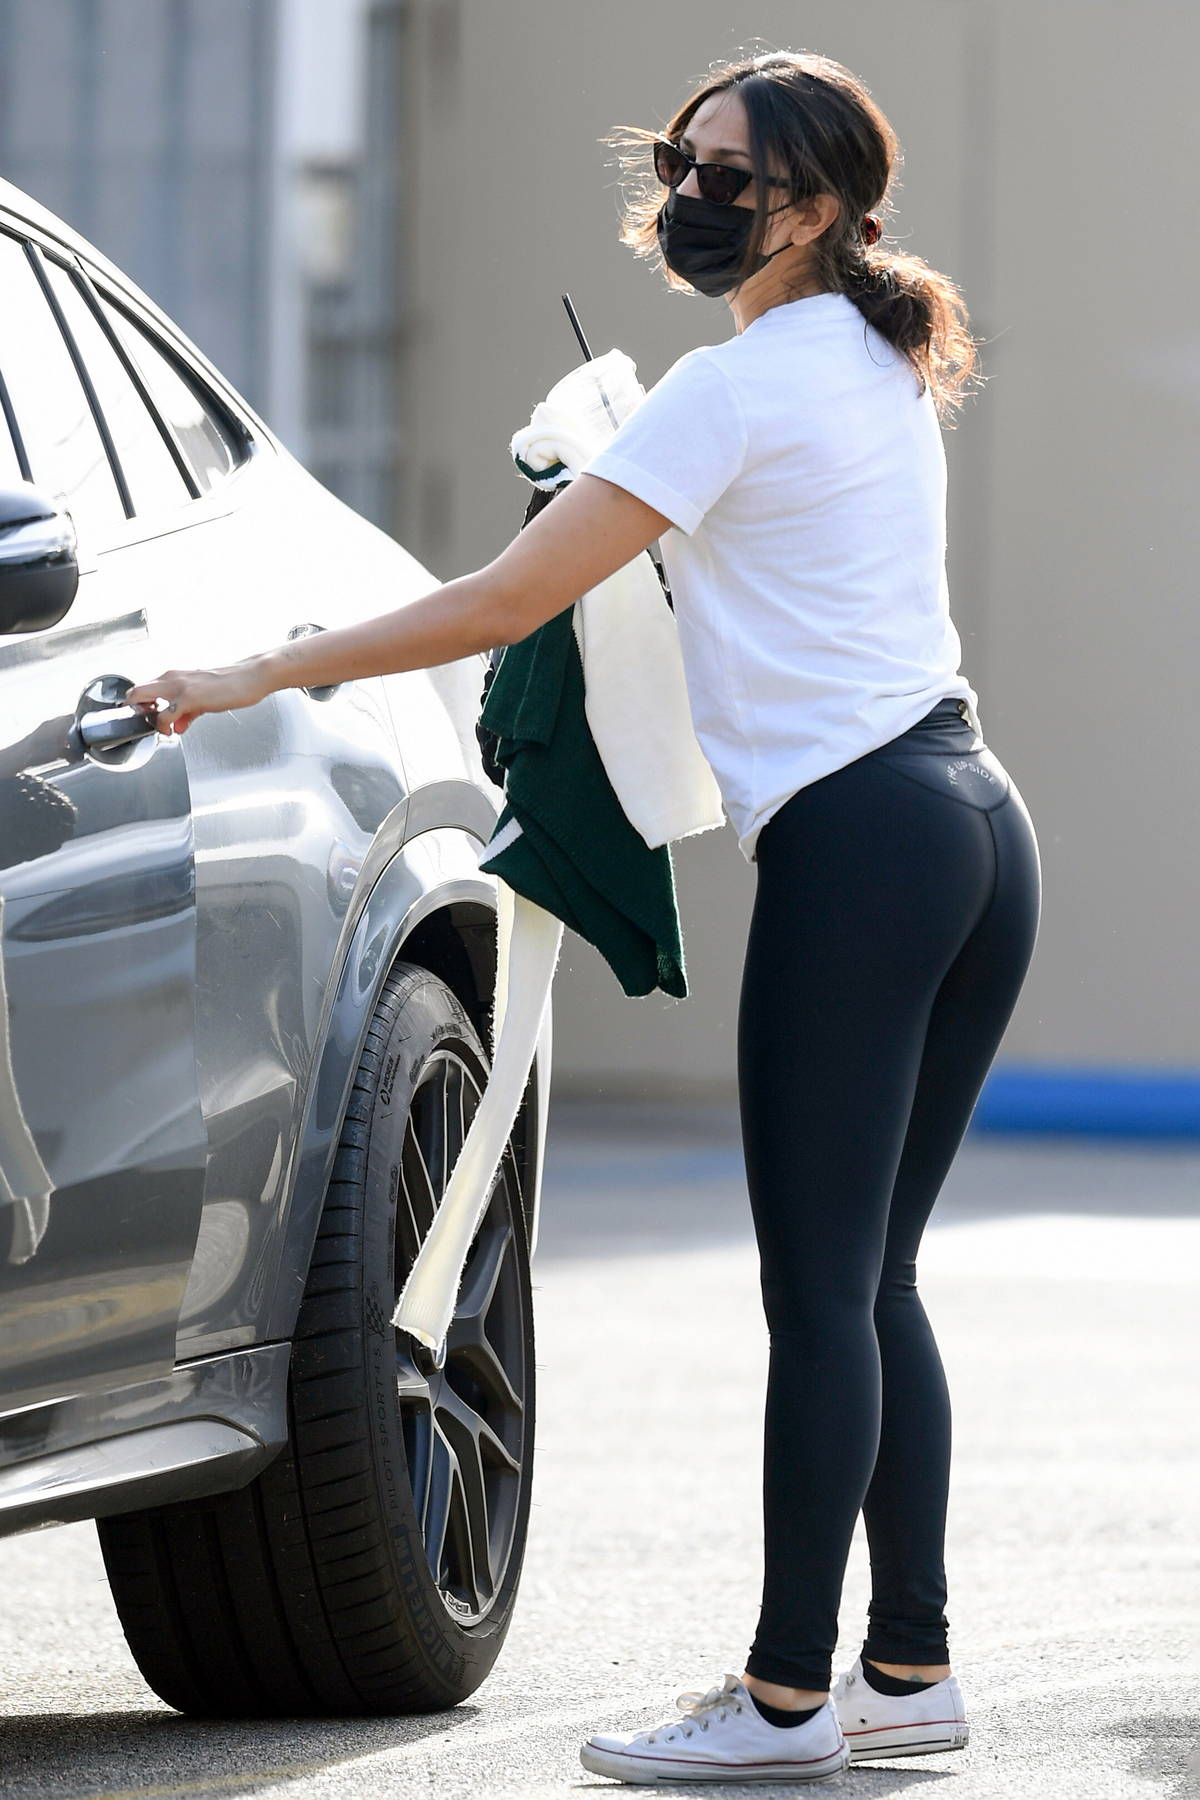 Eiza Gonzalez seen leaving a gym after a grueling workout in Los Angeles